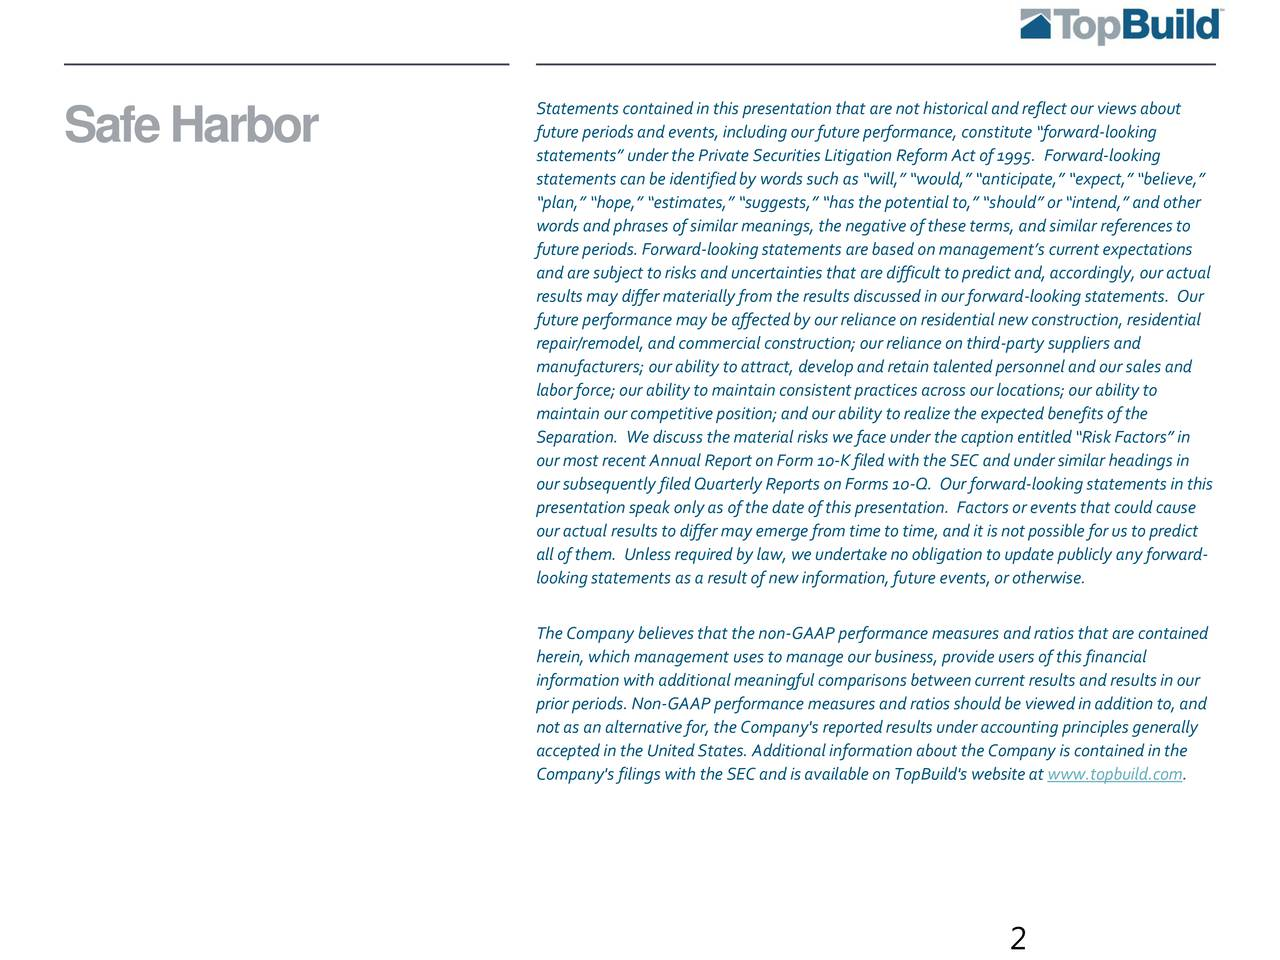 SafeHarbor future periods and events,including our future performance, constitute forward-looking statements under the Private Securities Litigation Reform Act of 1995. Forward-looking statements can be identifiedby words such as will, would, anticipate, expect, believe, plan, hope, estimates, suggests, has the potential to, should or intend, and other words and phrases of similar meanings, the negative of these terms, and similar references to future periods. Forward-lookingstatements are based on managements current expectations and are subject to risks and uncertainties that are difficult to predict and, accordingly, our actual results may differ materially from the results discussed in our forward-looking statements. Our future performance may be affected by our reliance on residential new construction, residential repair/remodel, and commercial construction; our reliance on third-party suppliers and manufacturers; our ability to attract, developand retain talented personnel and our sales and labor force; our ability to maintain consistent practices across our locations; our ability to maintain our competitive position; and our ability to realize the expected benefits of the Separation. We discuss the material risks we face under the caption entitled Risk Factors in our most recent Annual Report on Form 10-K filed with the SEC and under similar headings in our subsequently filed Quarterly Reports on Forms 10-Q. Our forward-looking statements in this presentation speak only as of the date of this presentation. Factors or eventsthat could cause our actual results to differ may emerge from time to time, and it is not possible for us to predict all of them. Unless required by law, we undertake no obligation to update publicly any forward- lookingstatements as a result of new information, future events,or otherwise. The Company believes that the non-GAAP performance measures and ratios that are contained herein, which management uses to manage our business, provide u